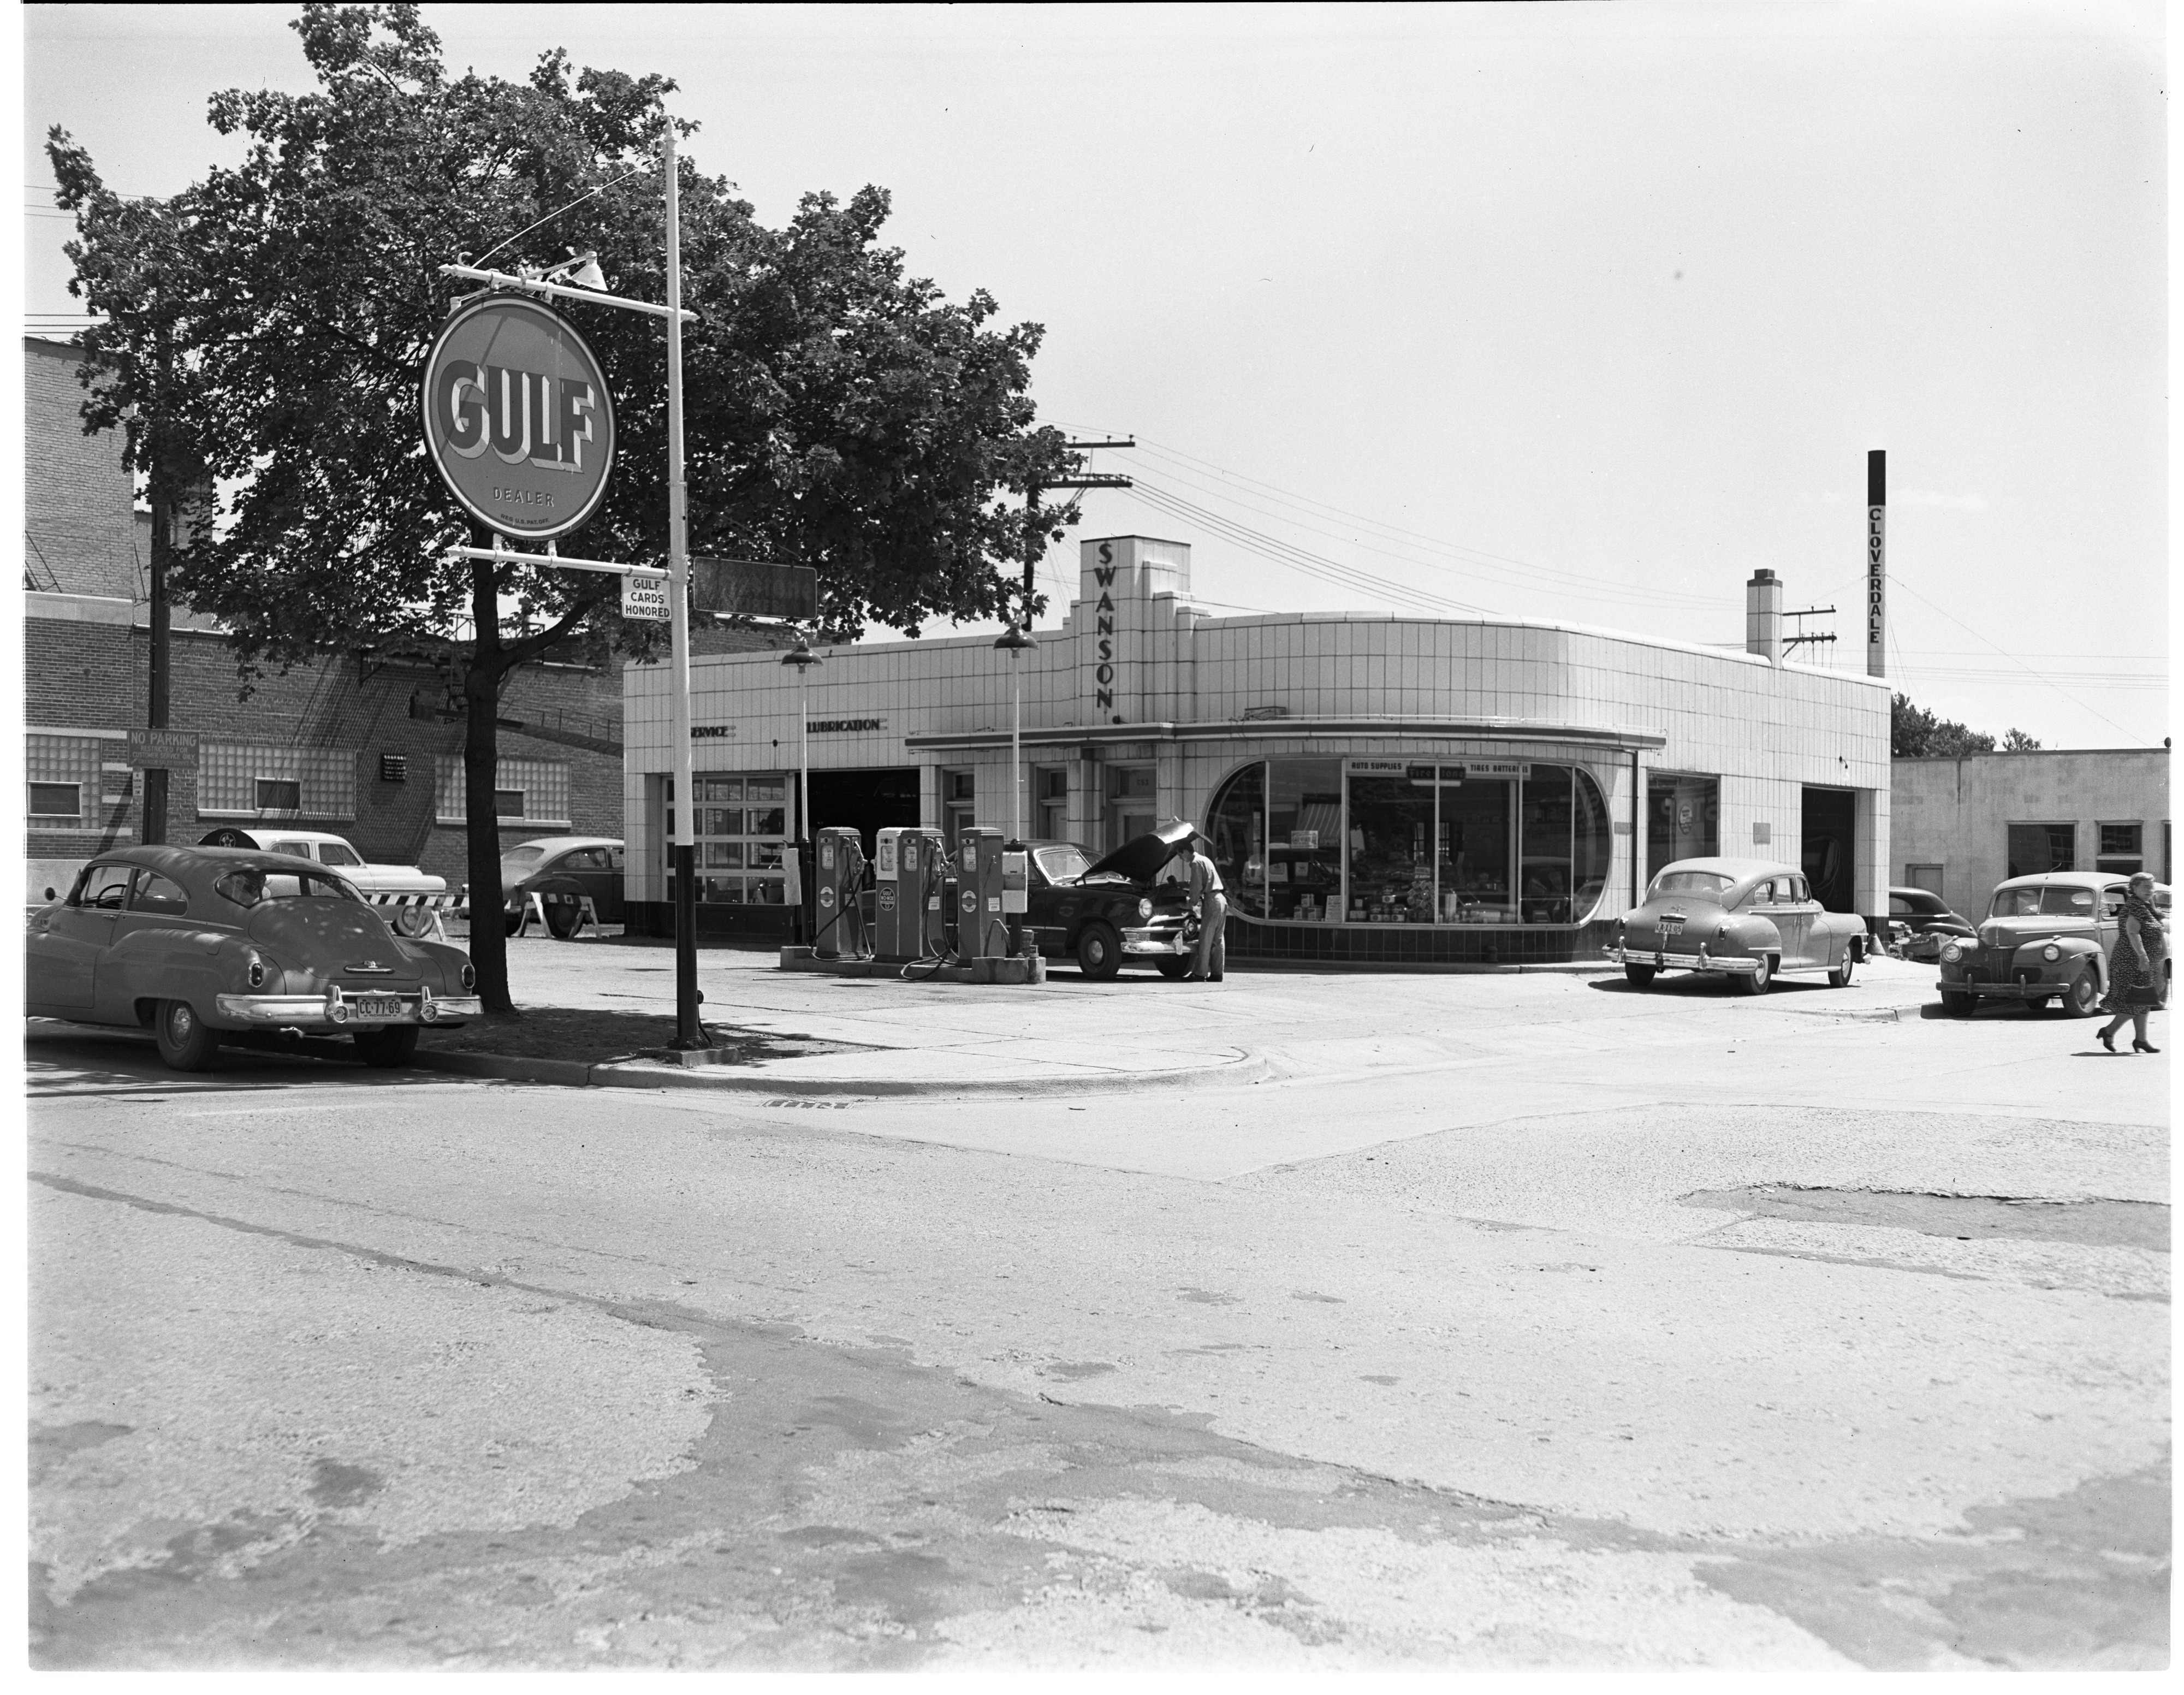 Swanson Service Center & Gulf Gas Station, August 1950 image